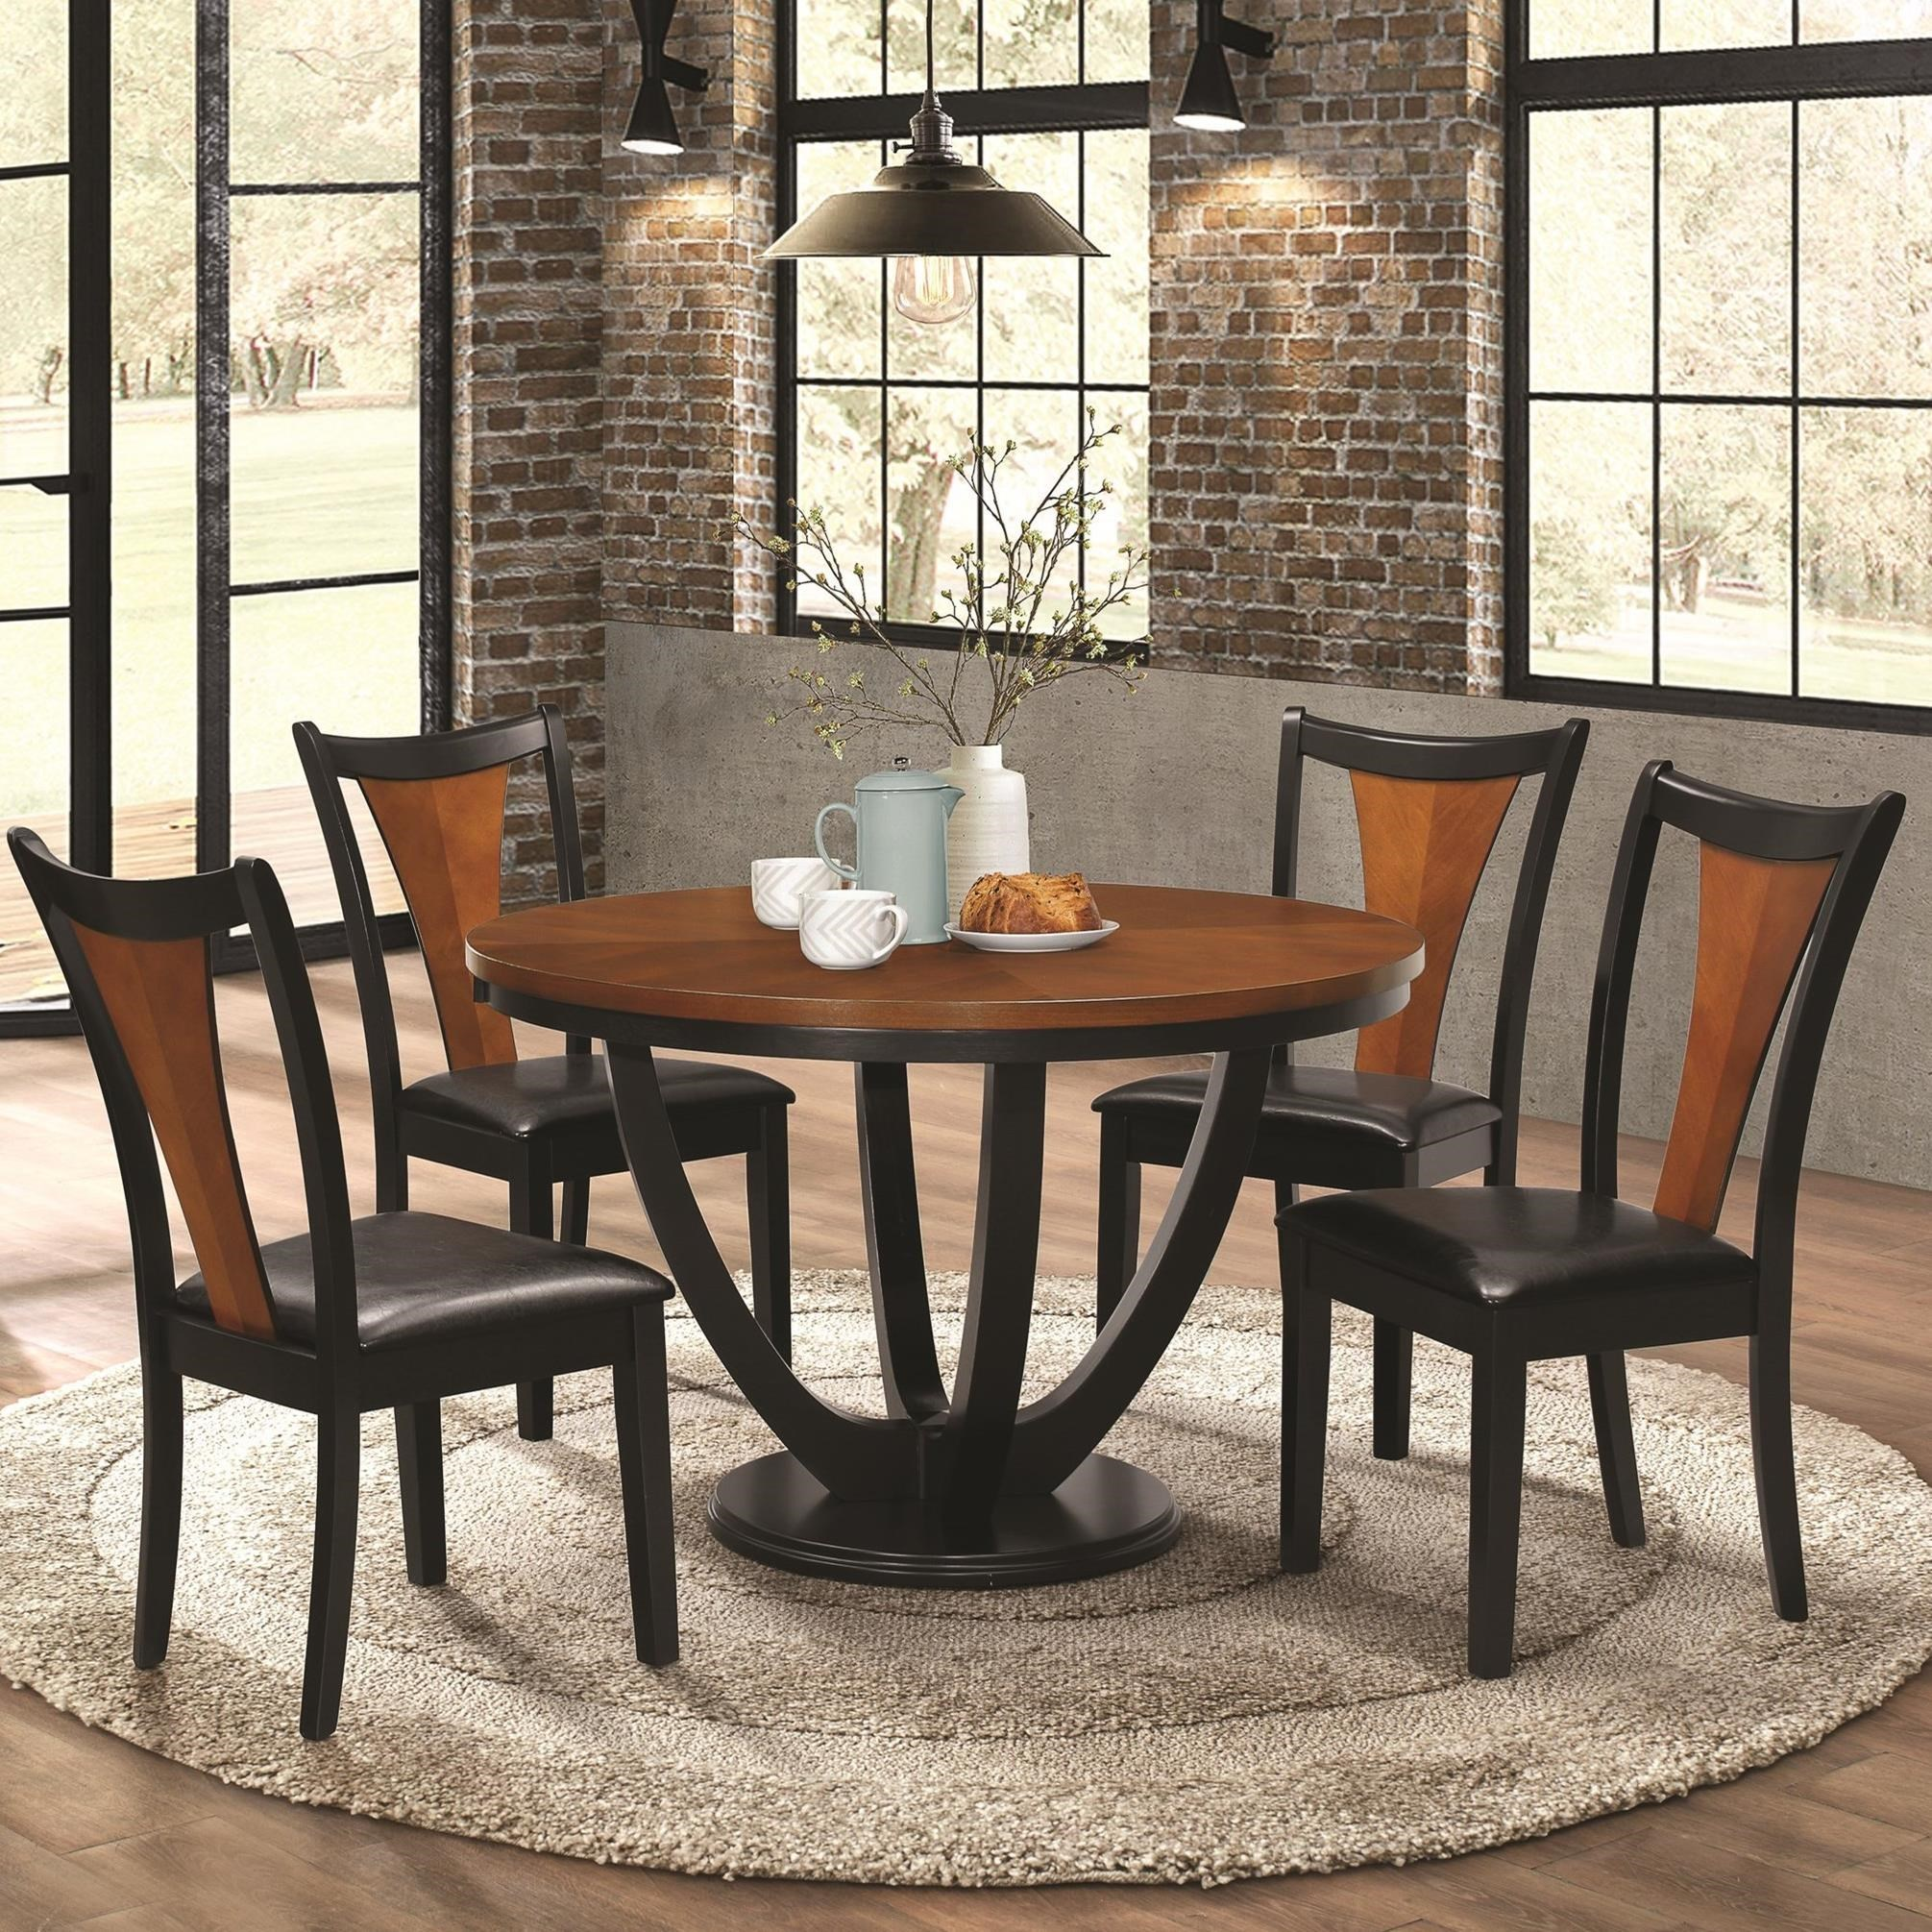 Coaster Boyer Contemporary 5 Piece Table And Chair Set With Two Tone Finish